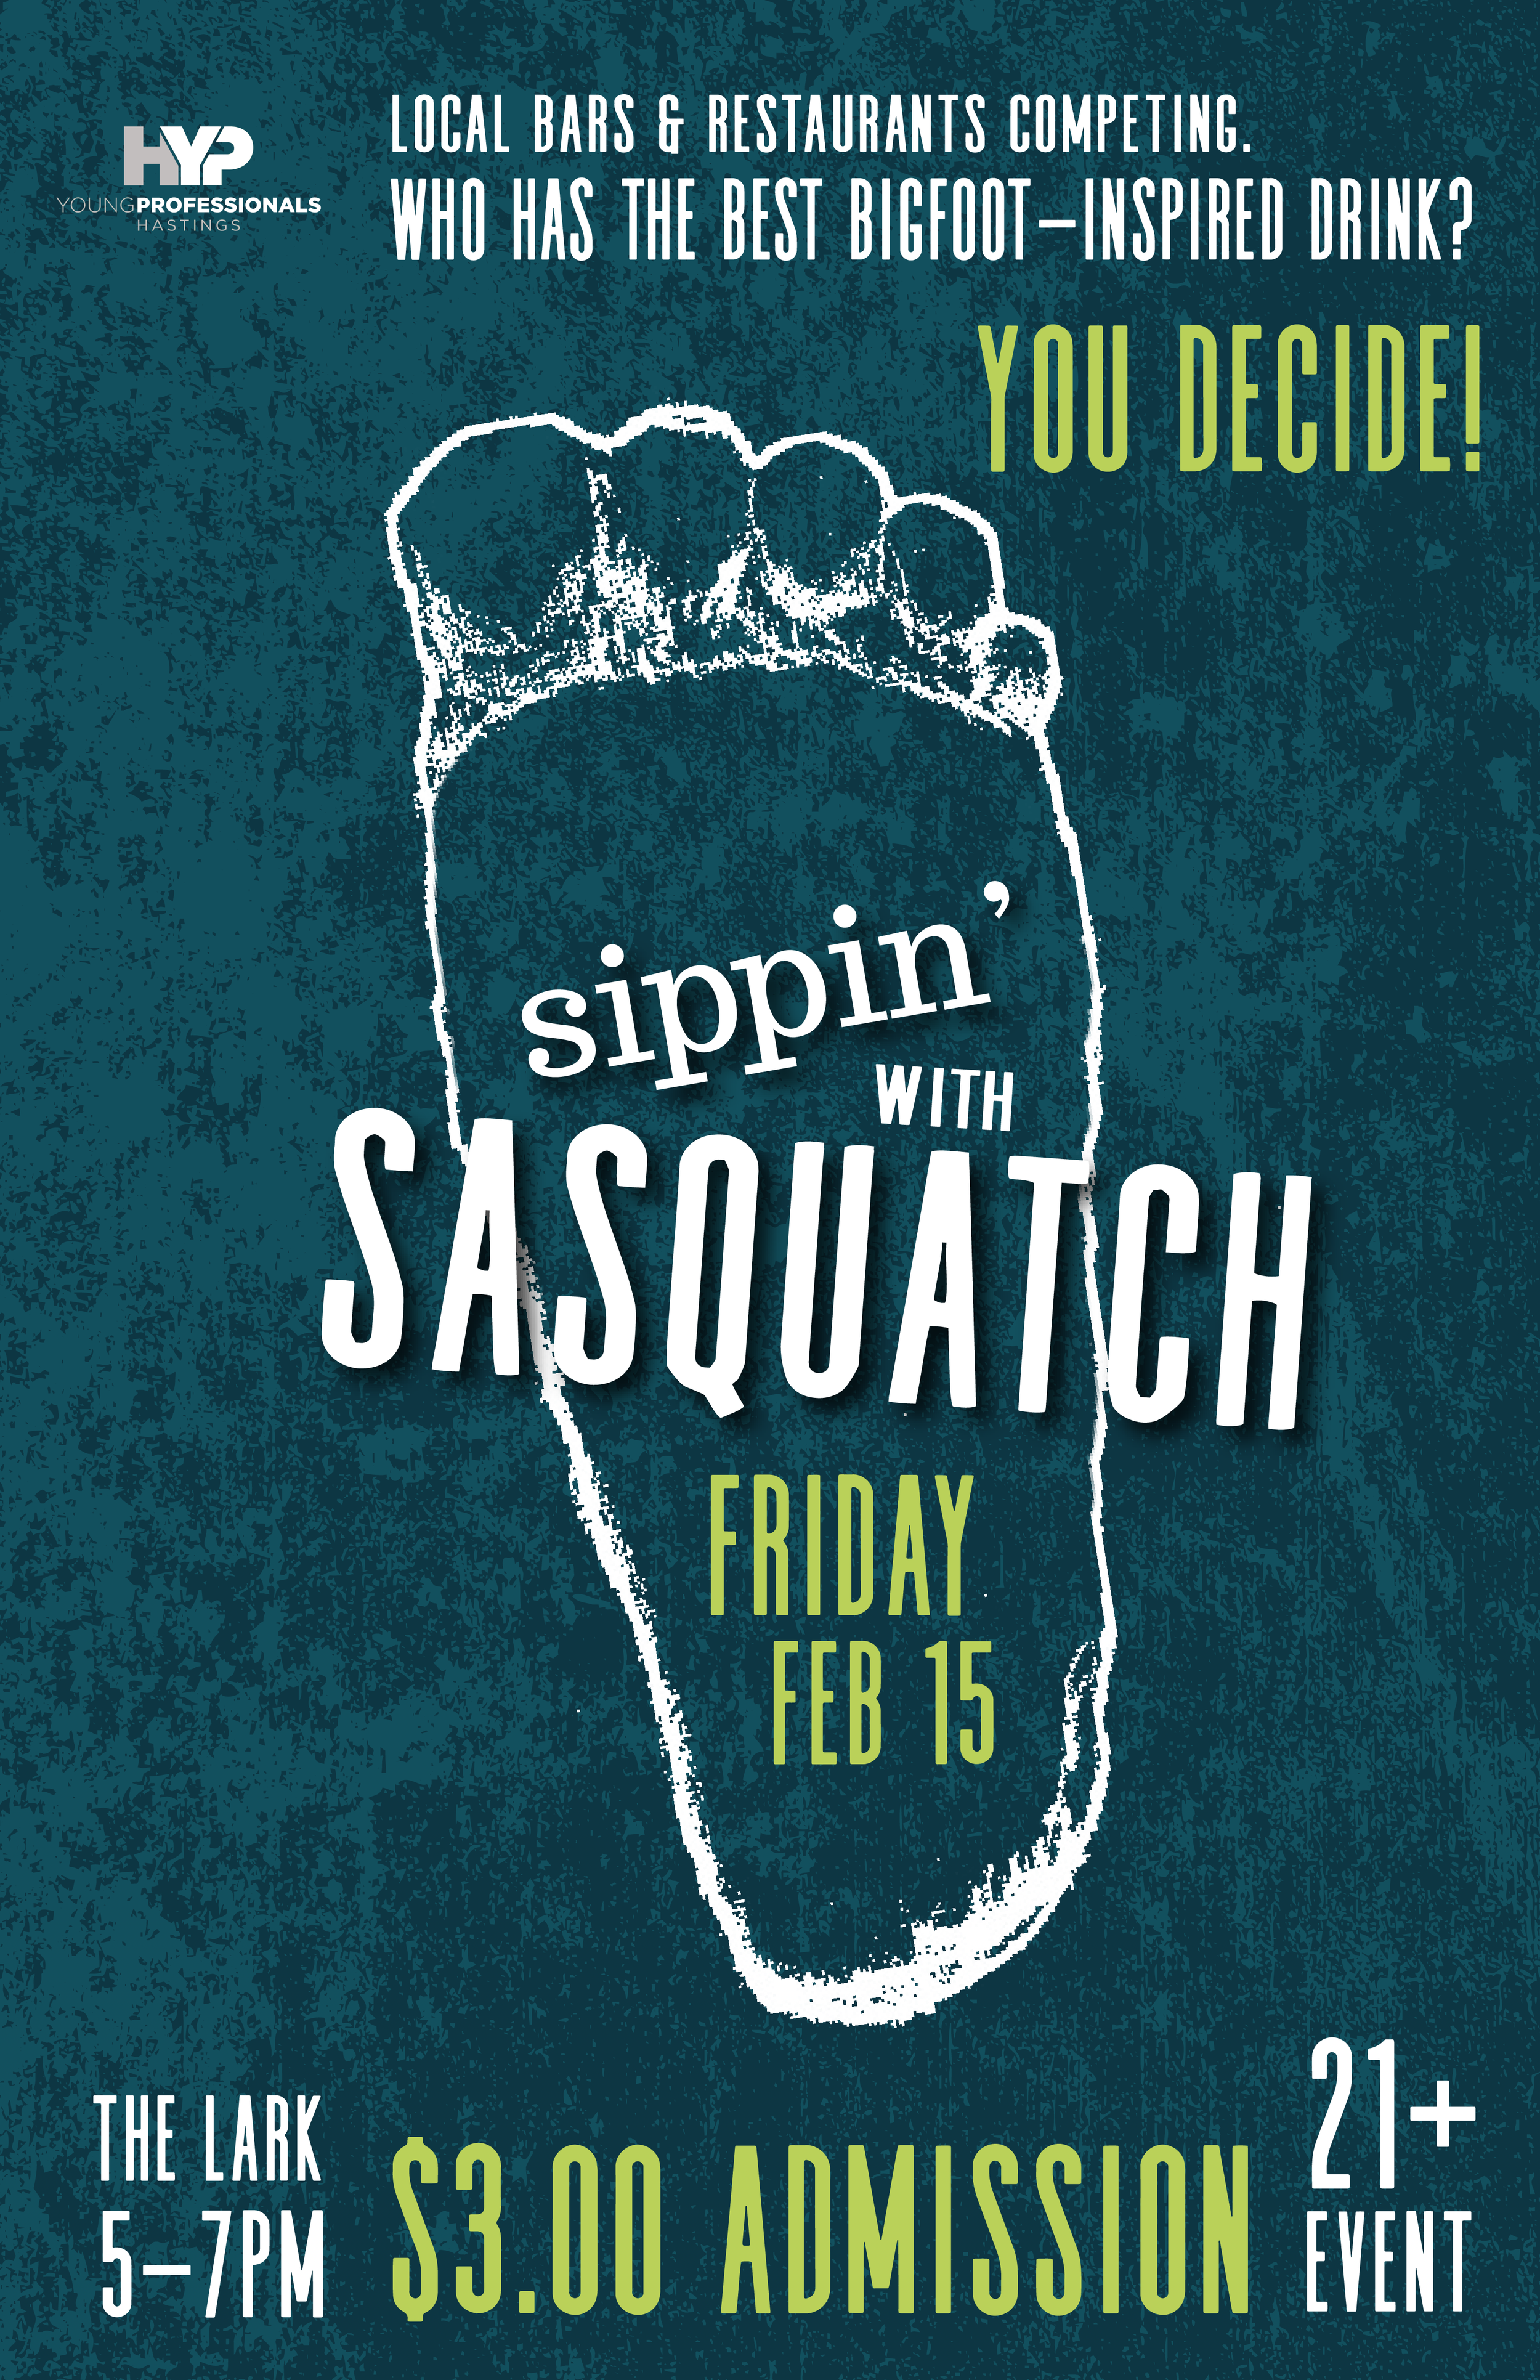 sippin_sasquatch_hyp_2019-01.png